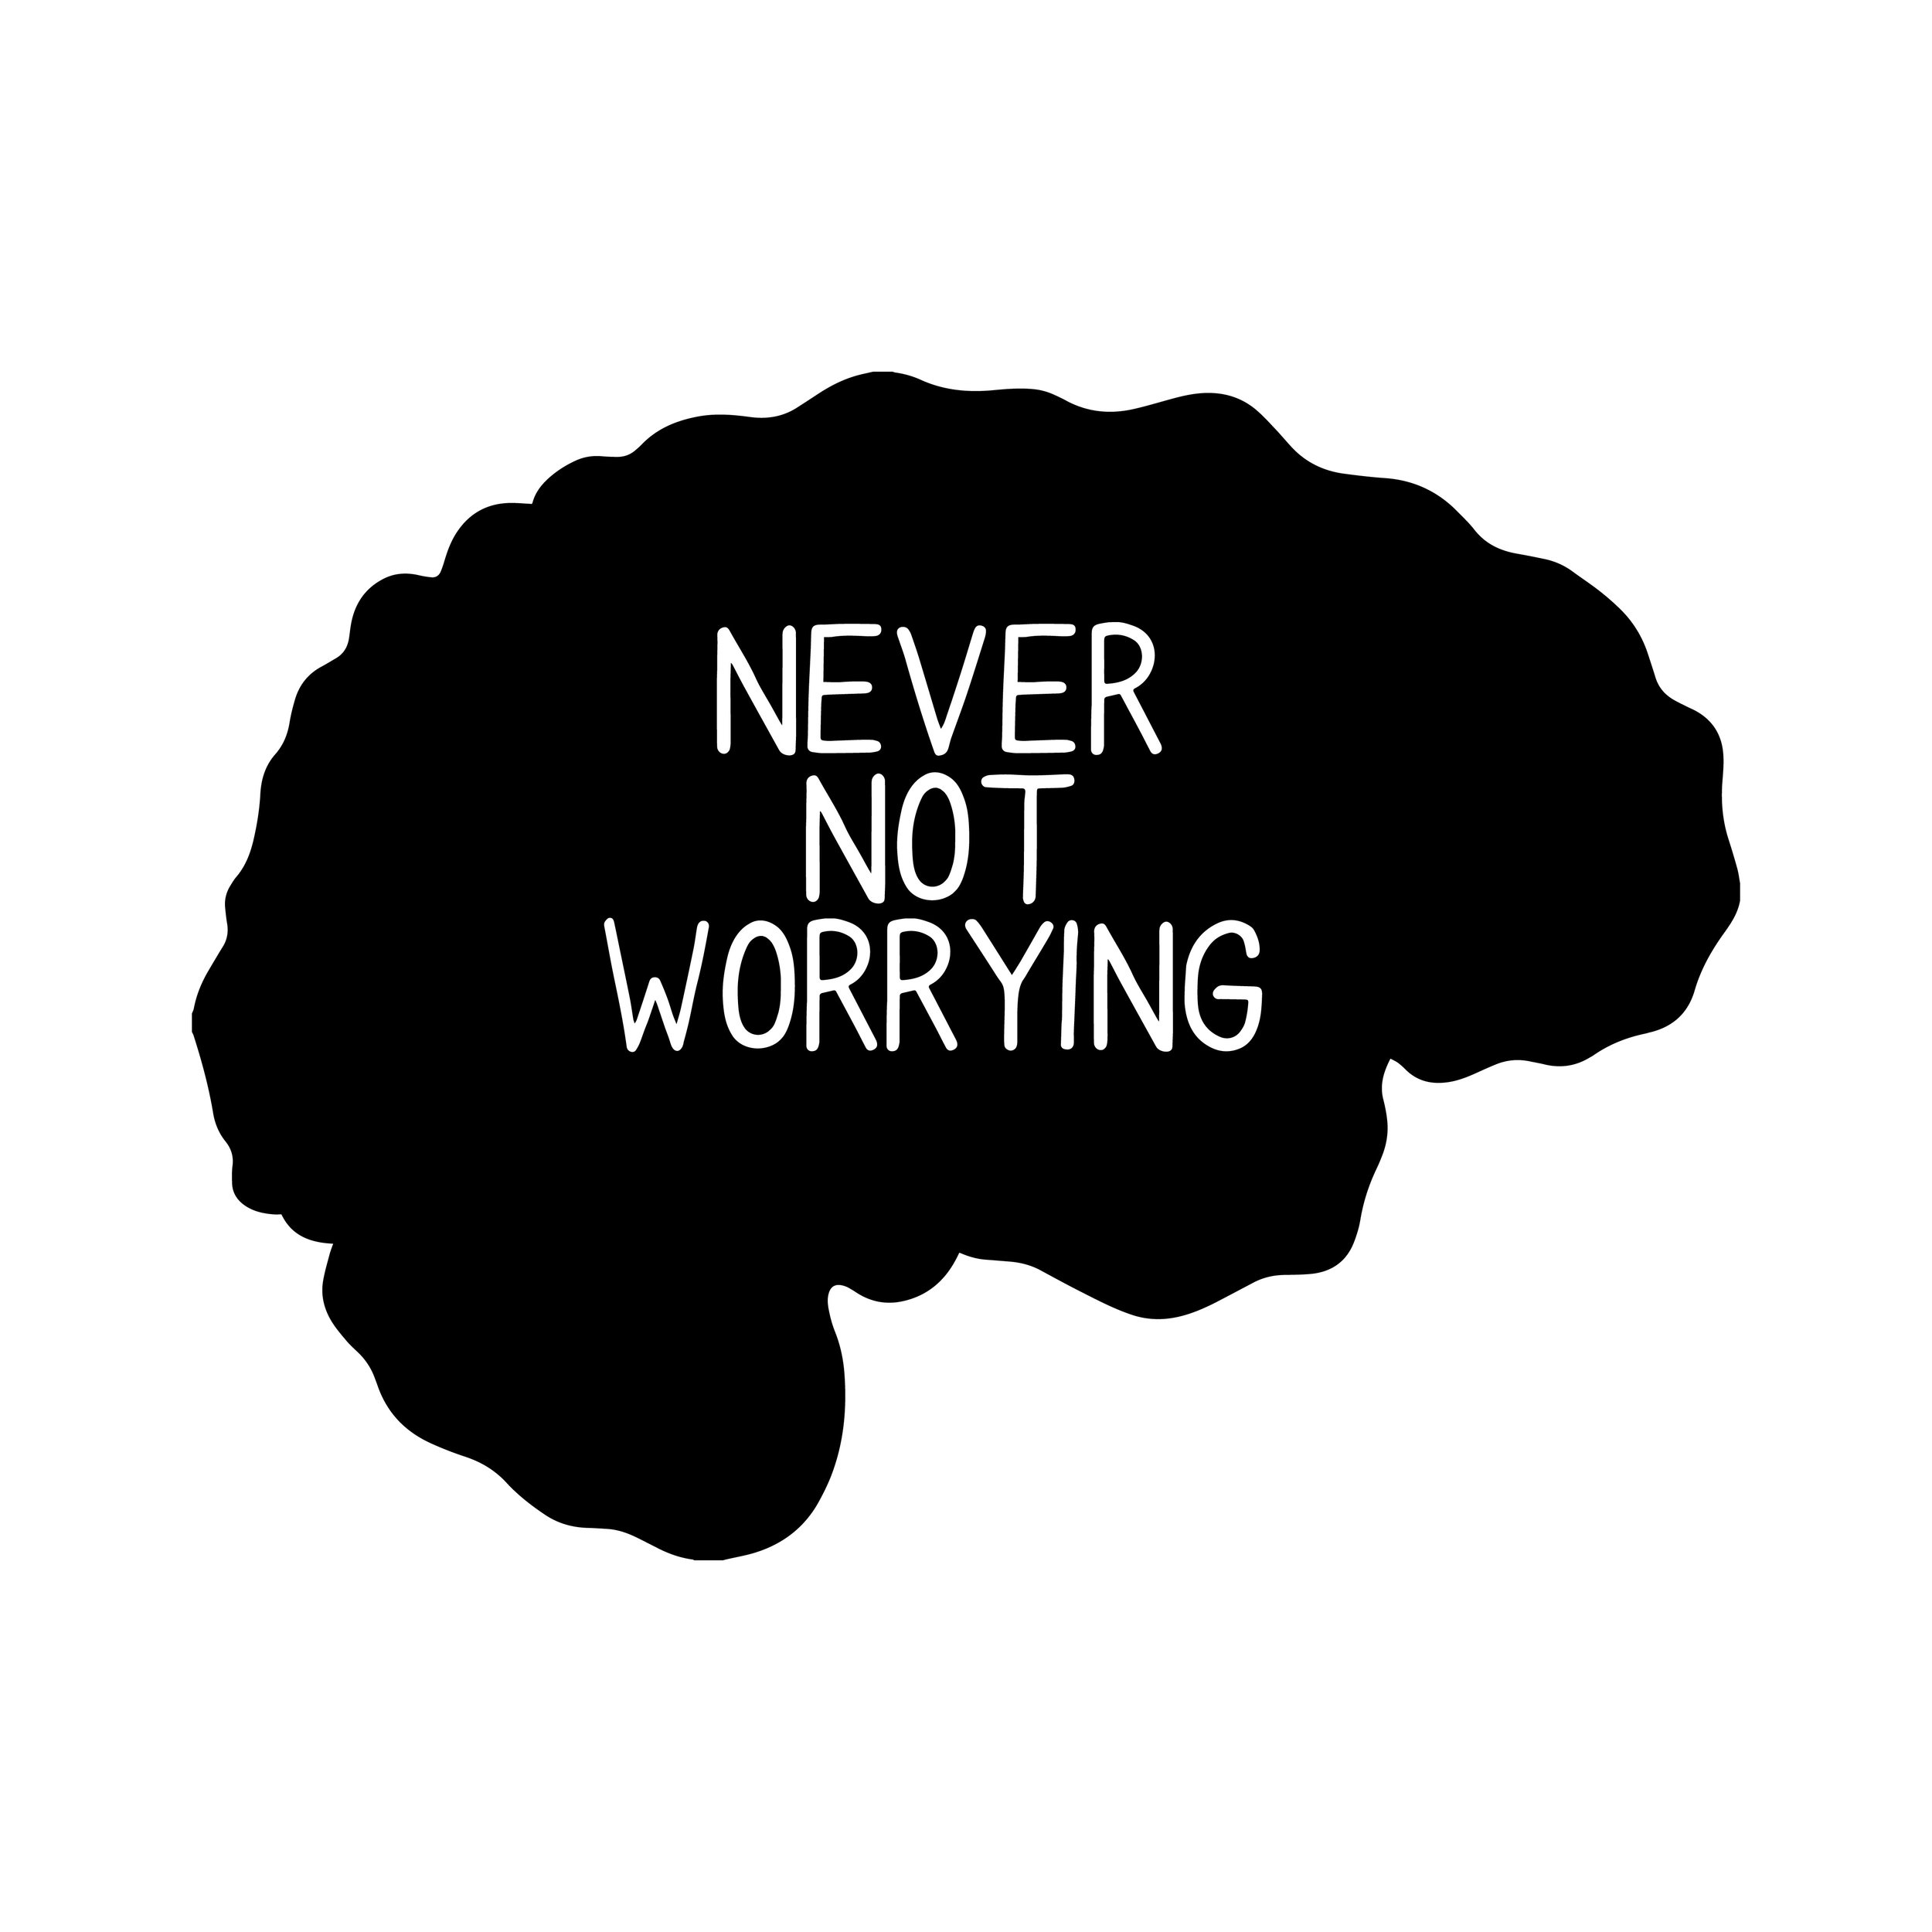 nevernotworrying-01.jpg